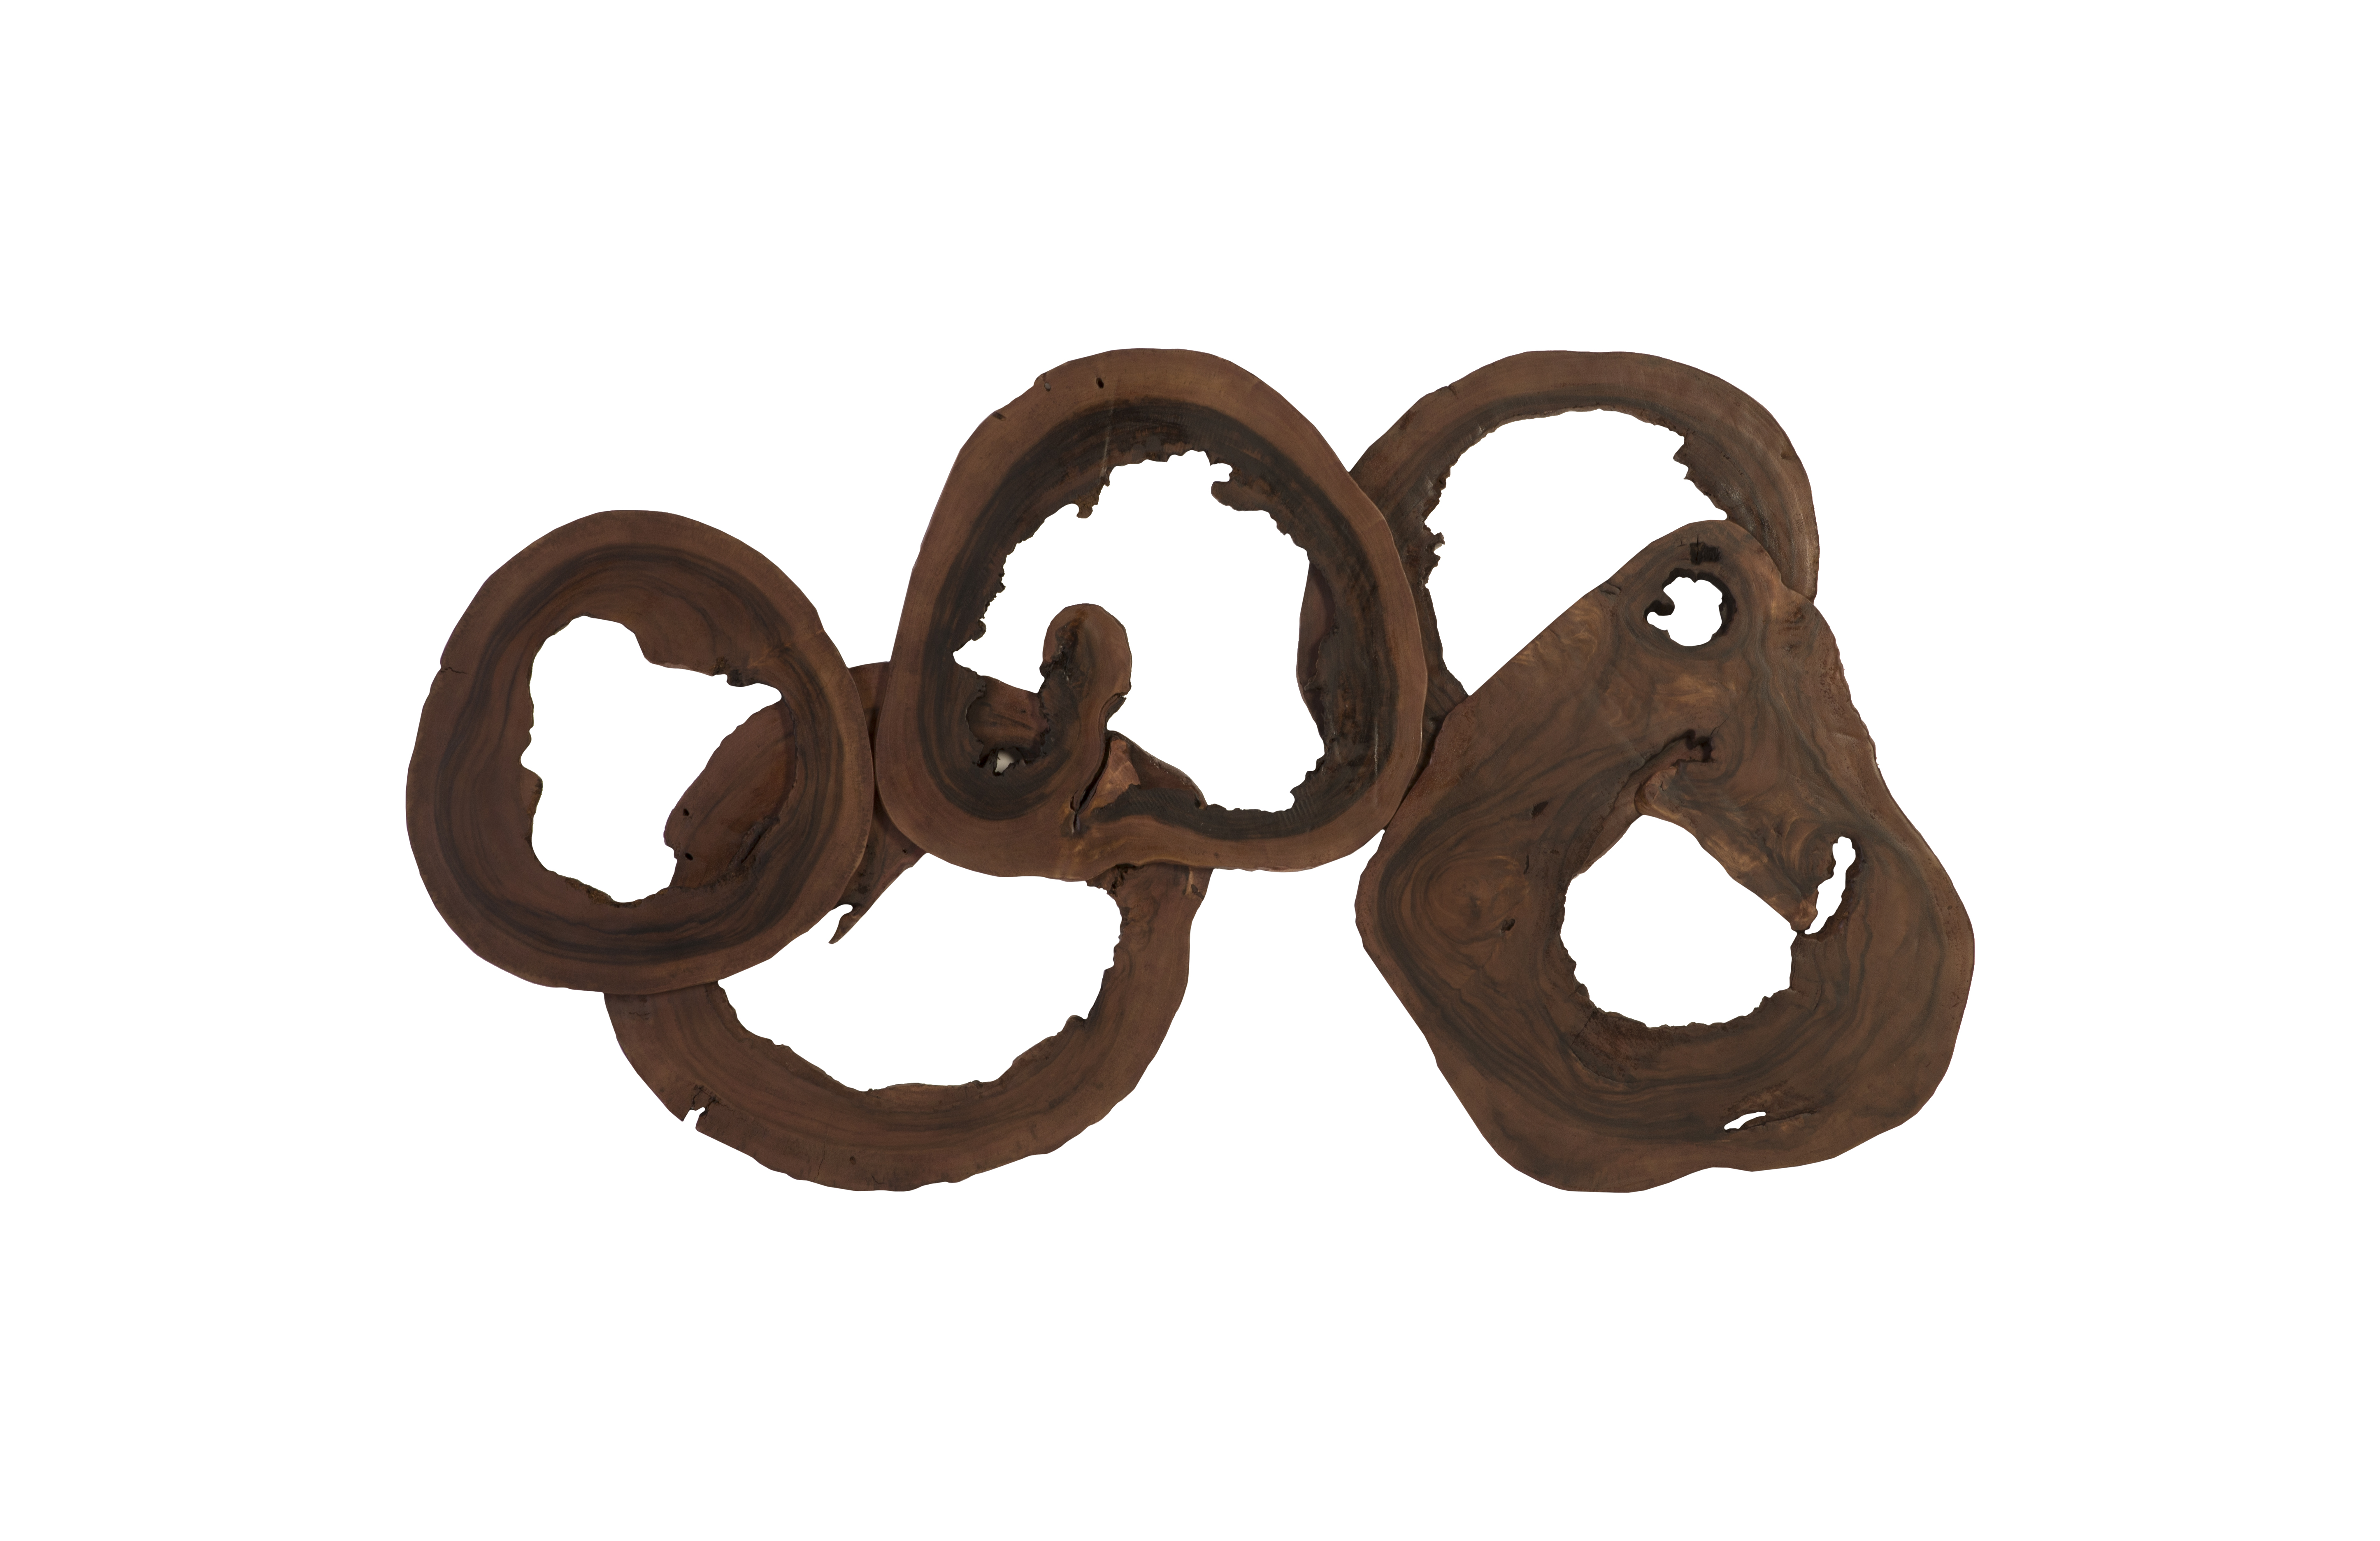 Phillips Collection Chamcha wood Olympic wall ring decor